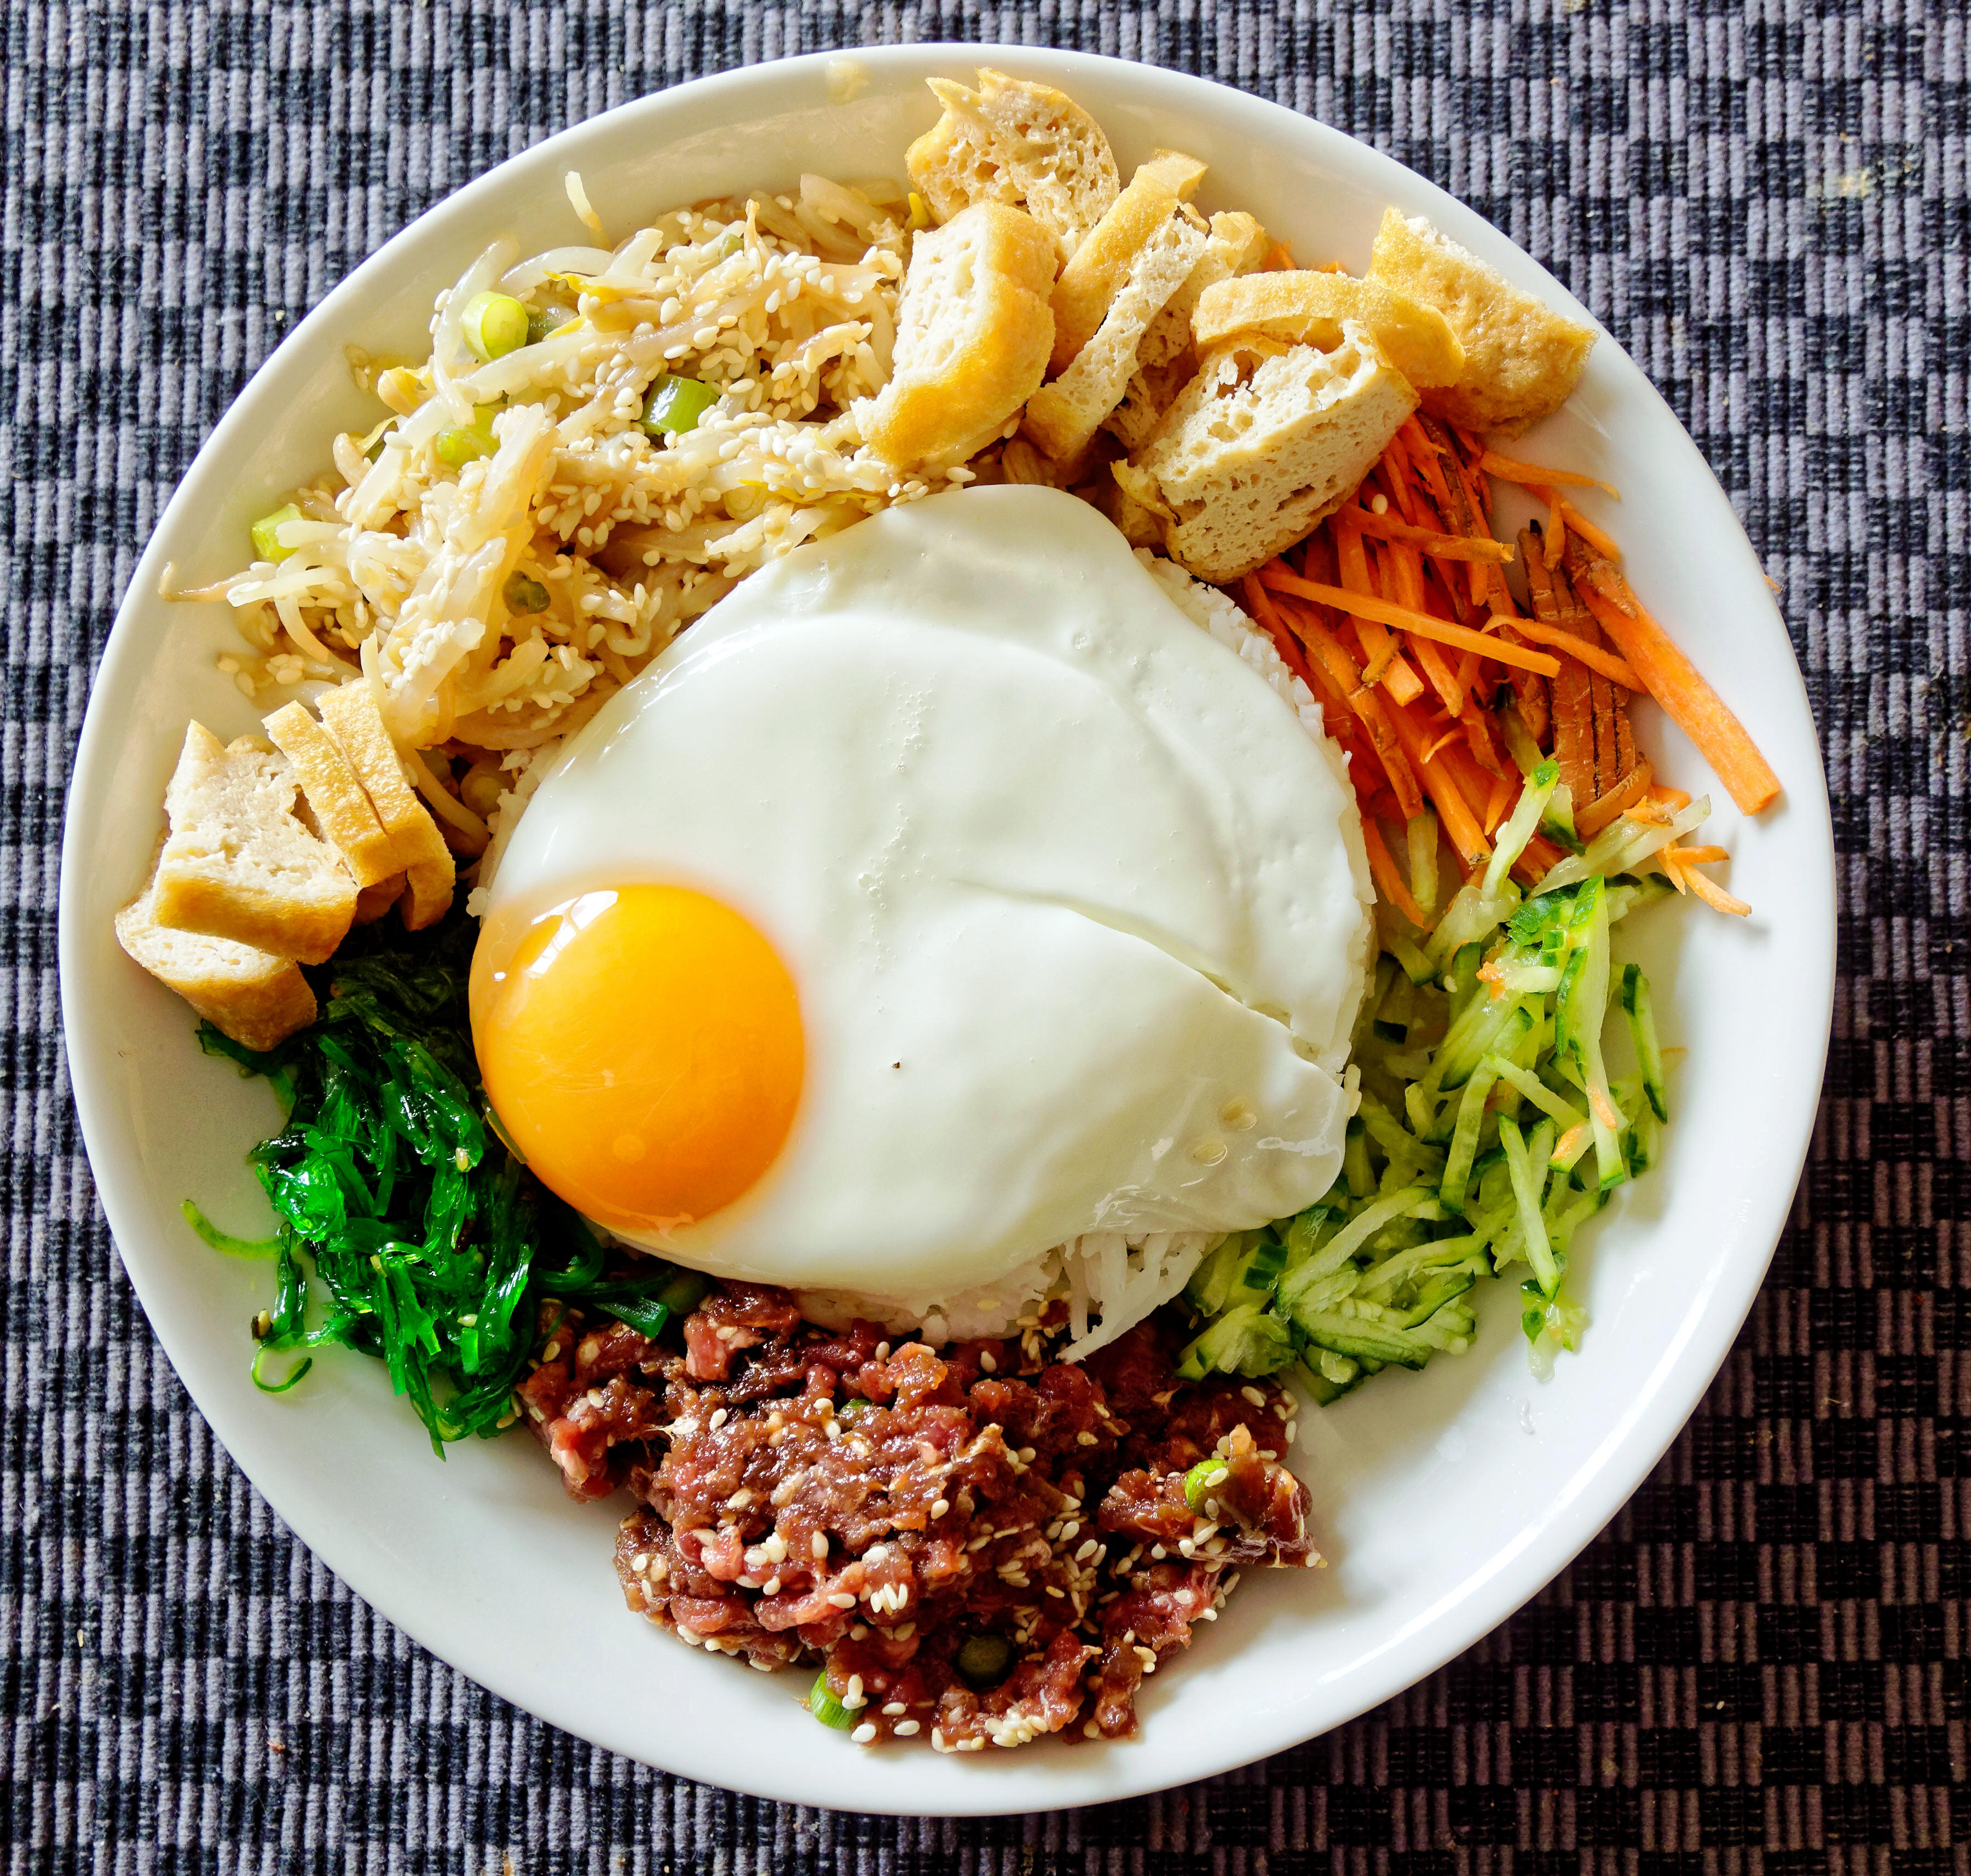 This should be Bibimbap.jpeg.  Is it missing?